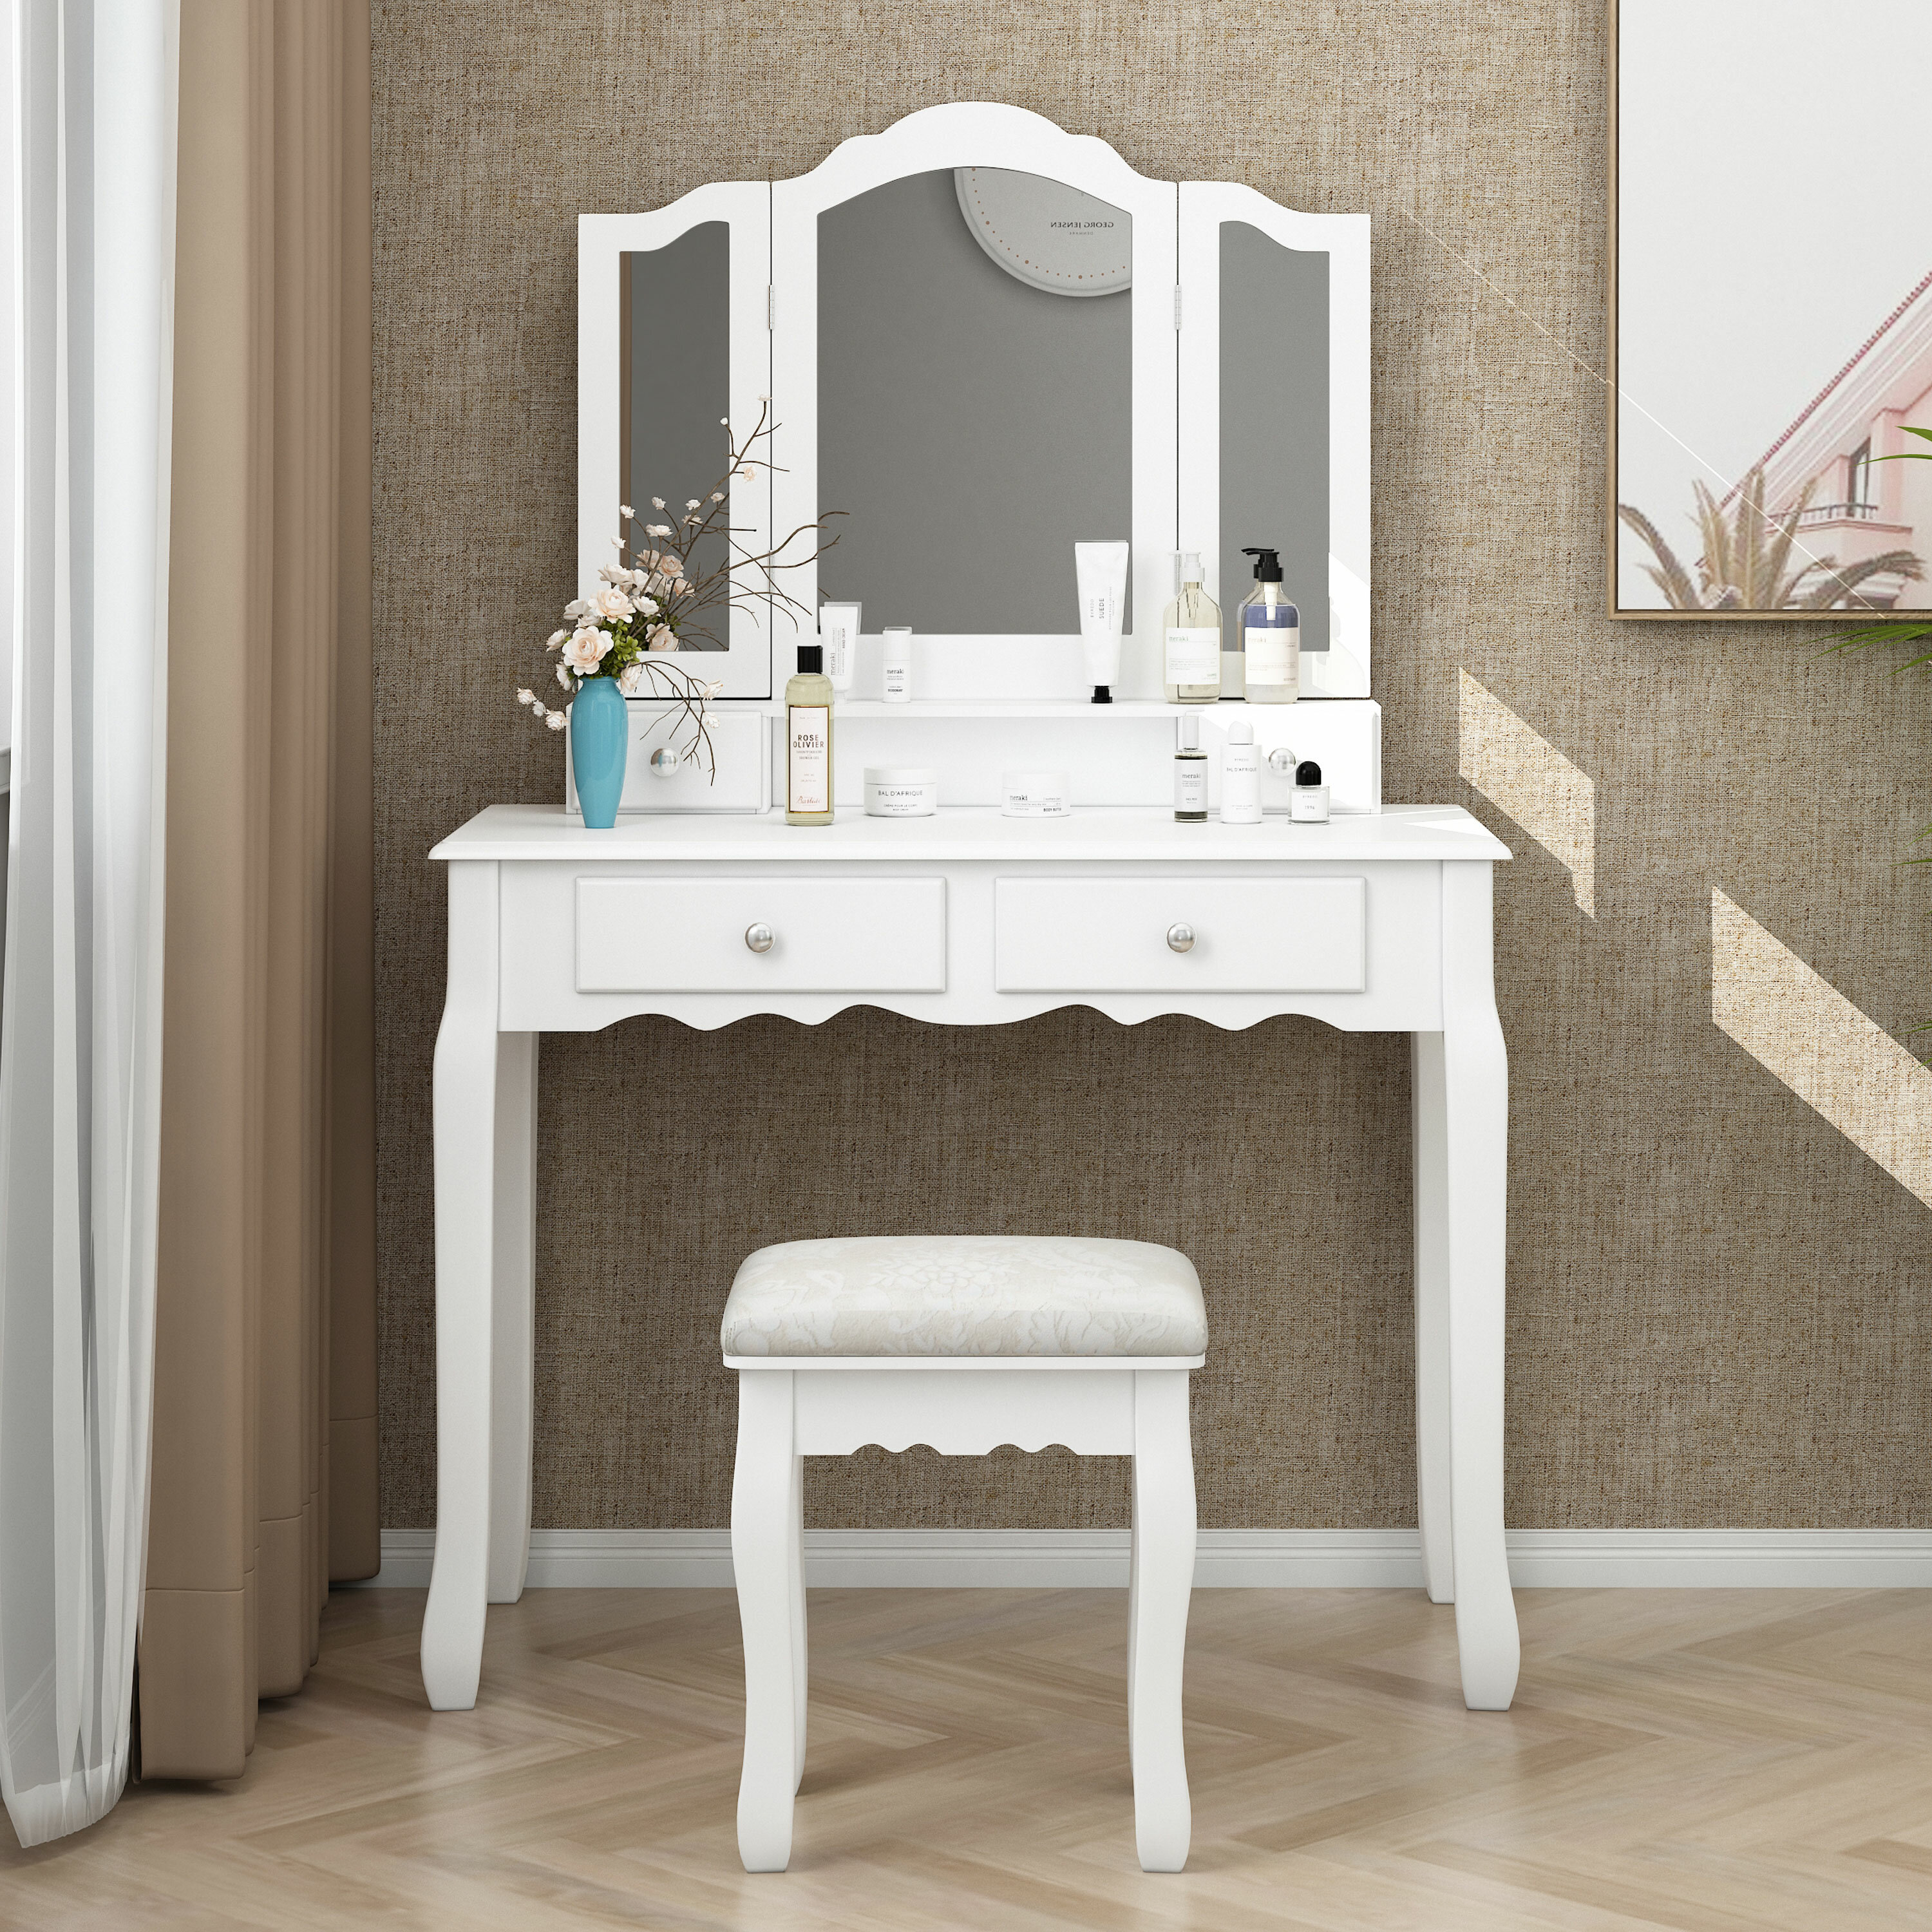 House Of Hampton Rippeon Makeup Vanity Set With Stool And Mirror Reviews